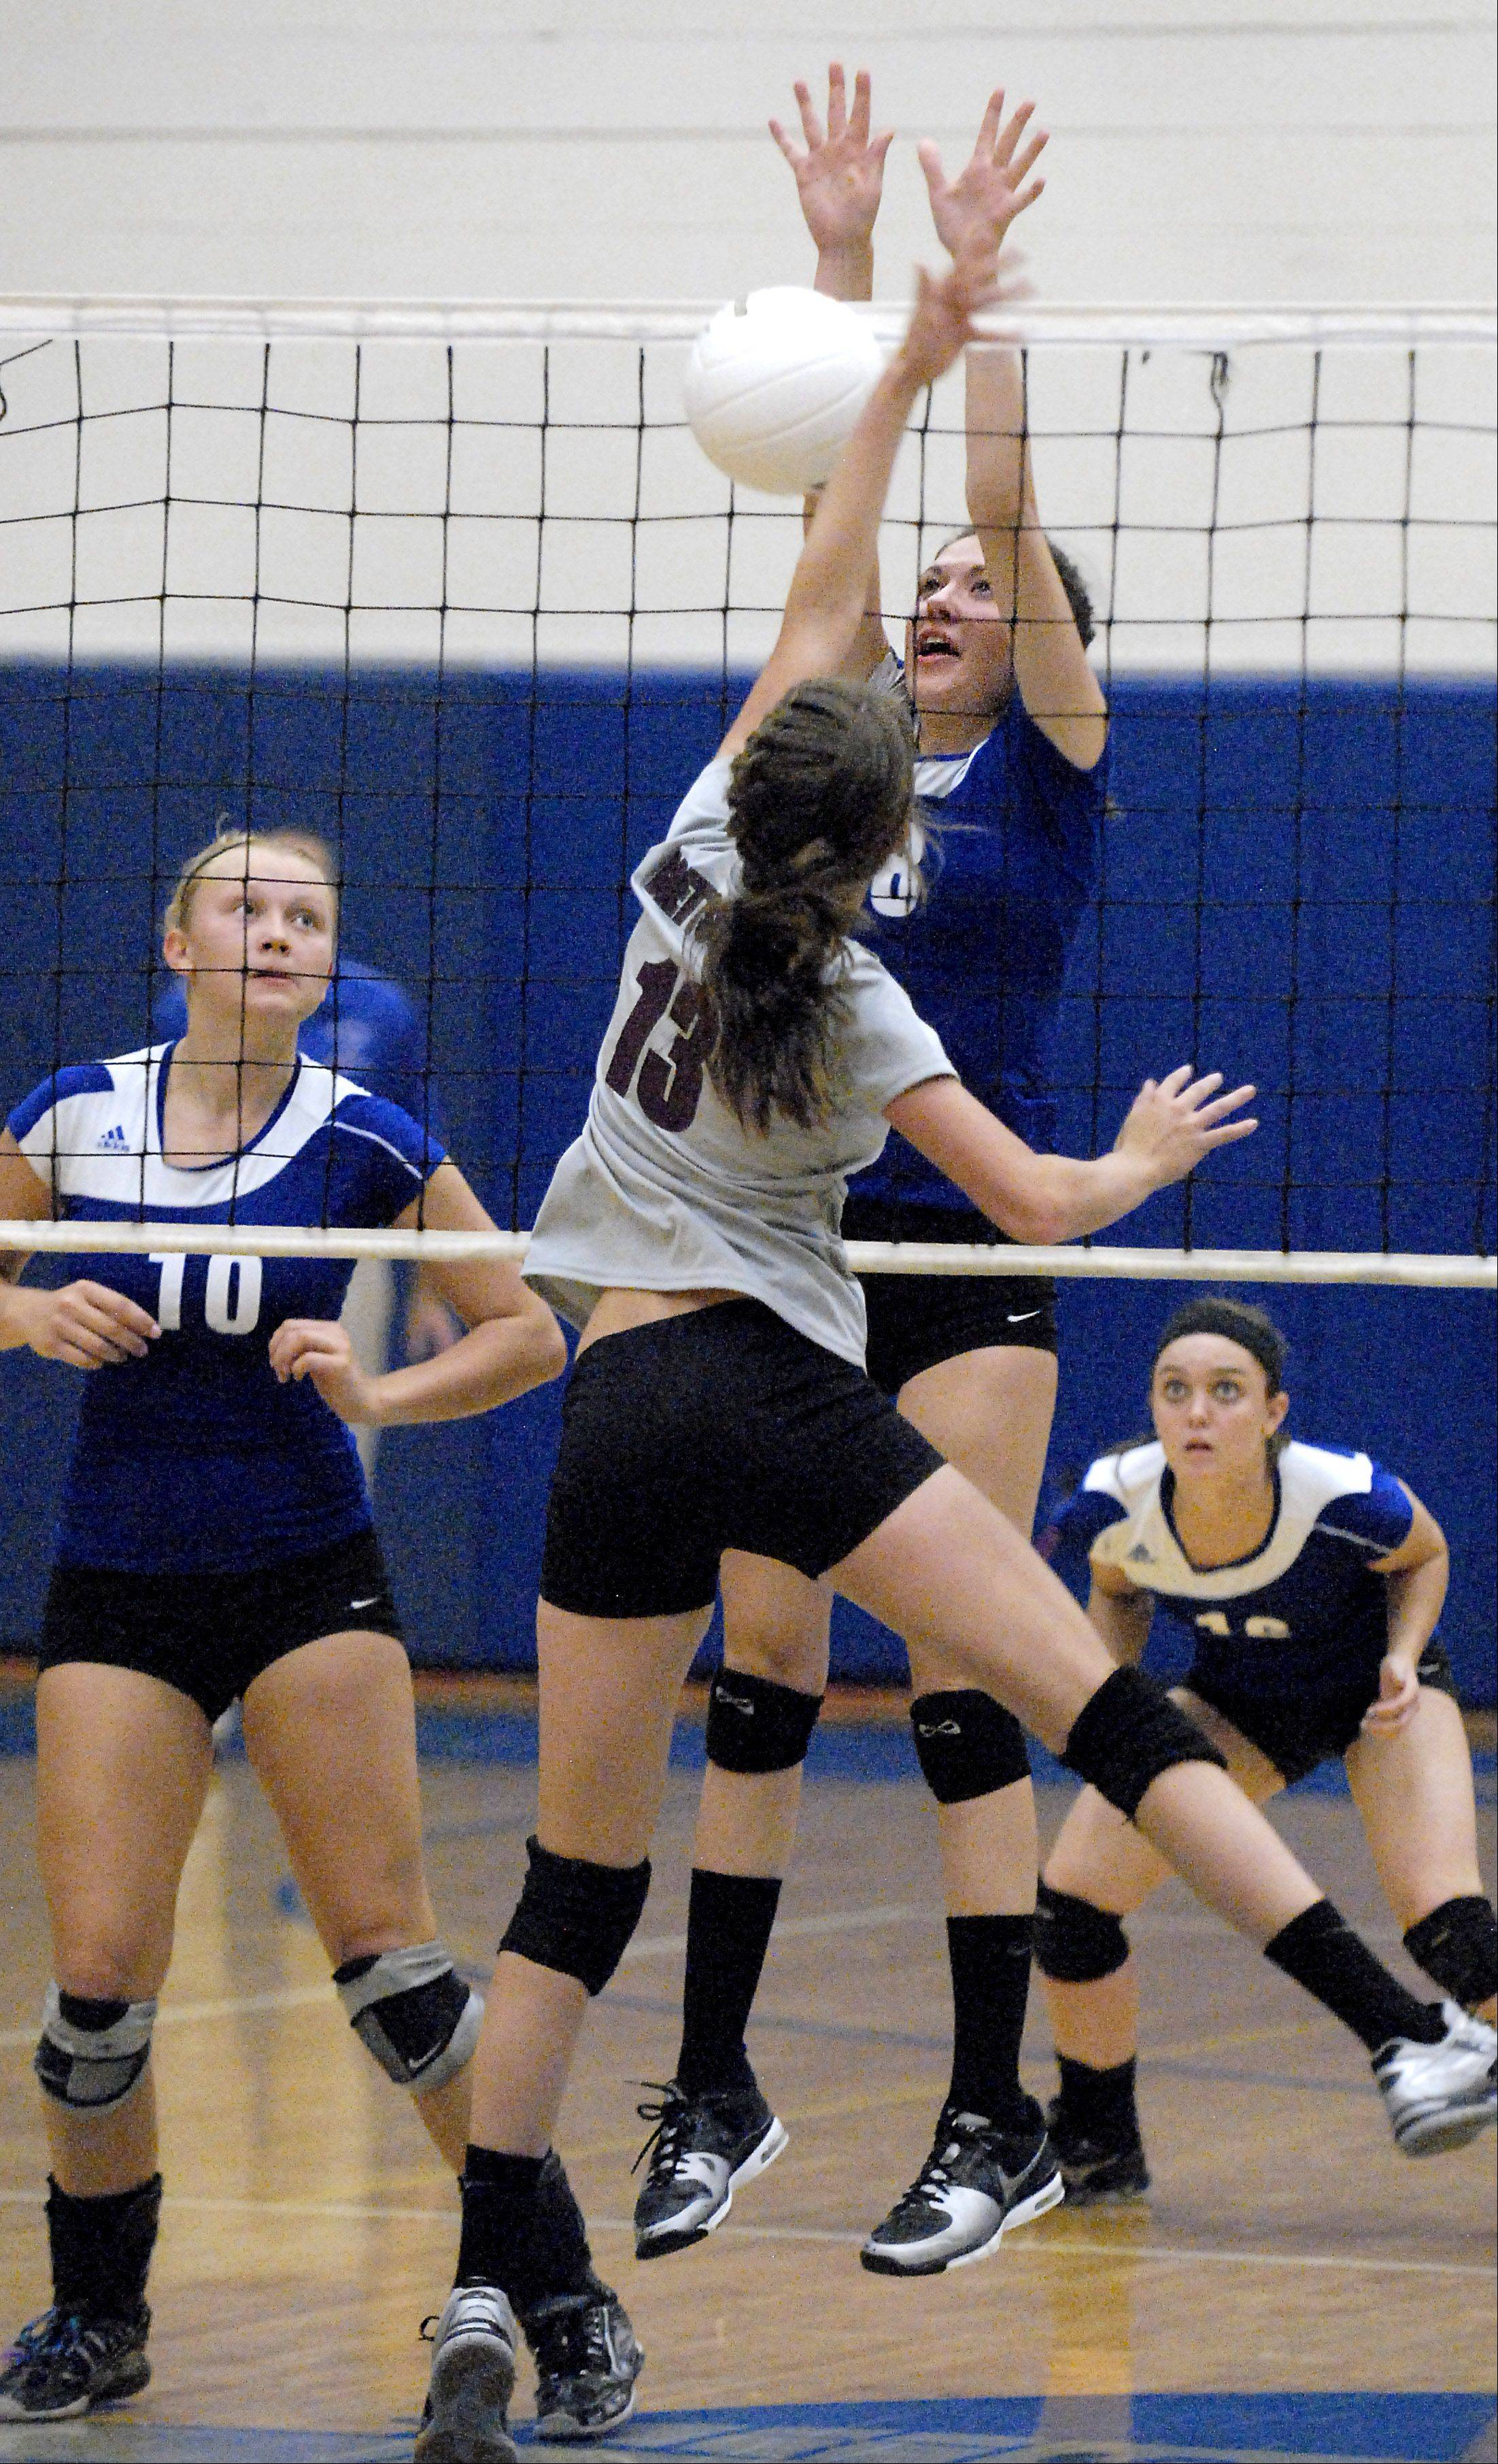 Burlington Central's Lauren Peltonen block a spike by Marengo's Logan Brettschneider in the second set on Wednesday at Burlington Central.